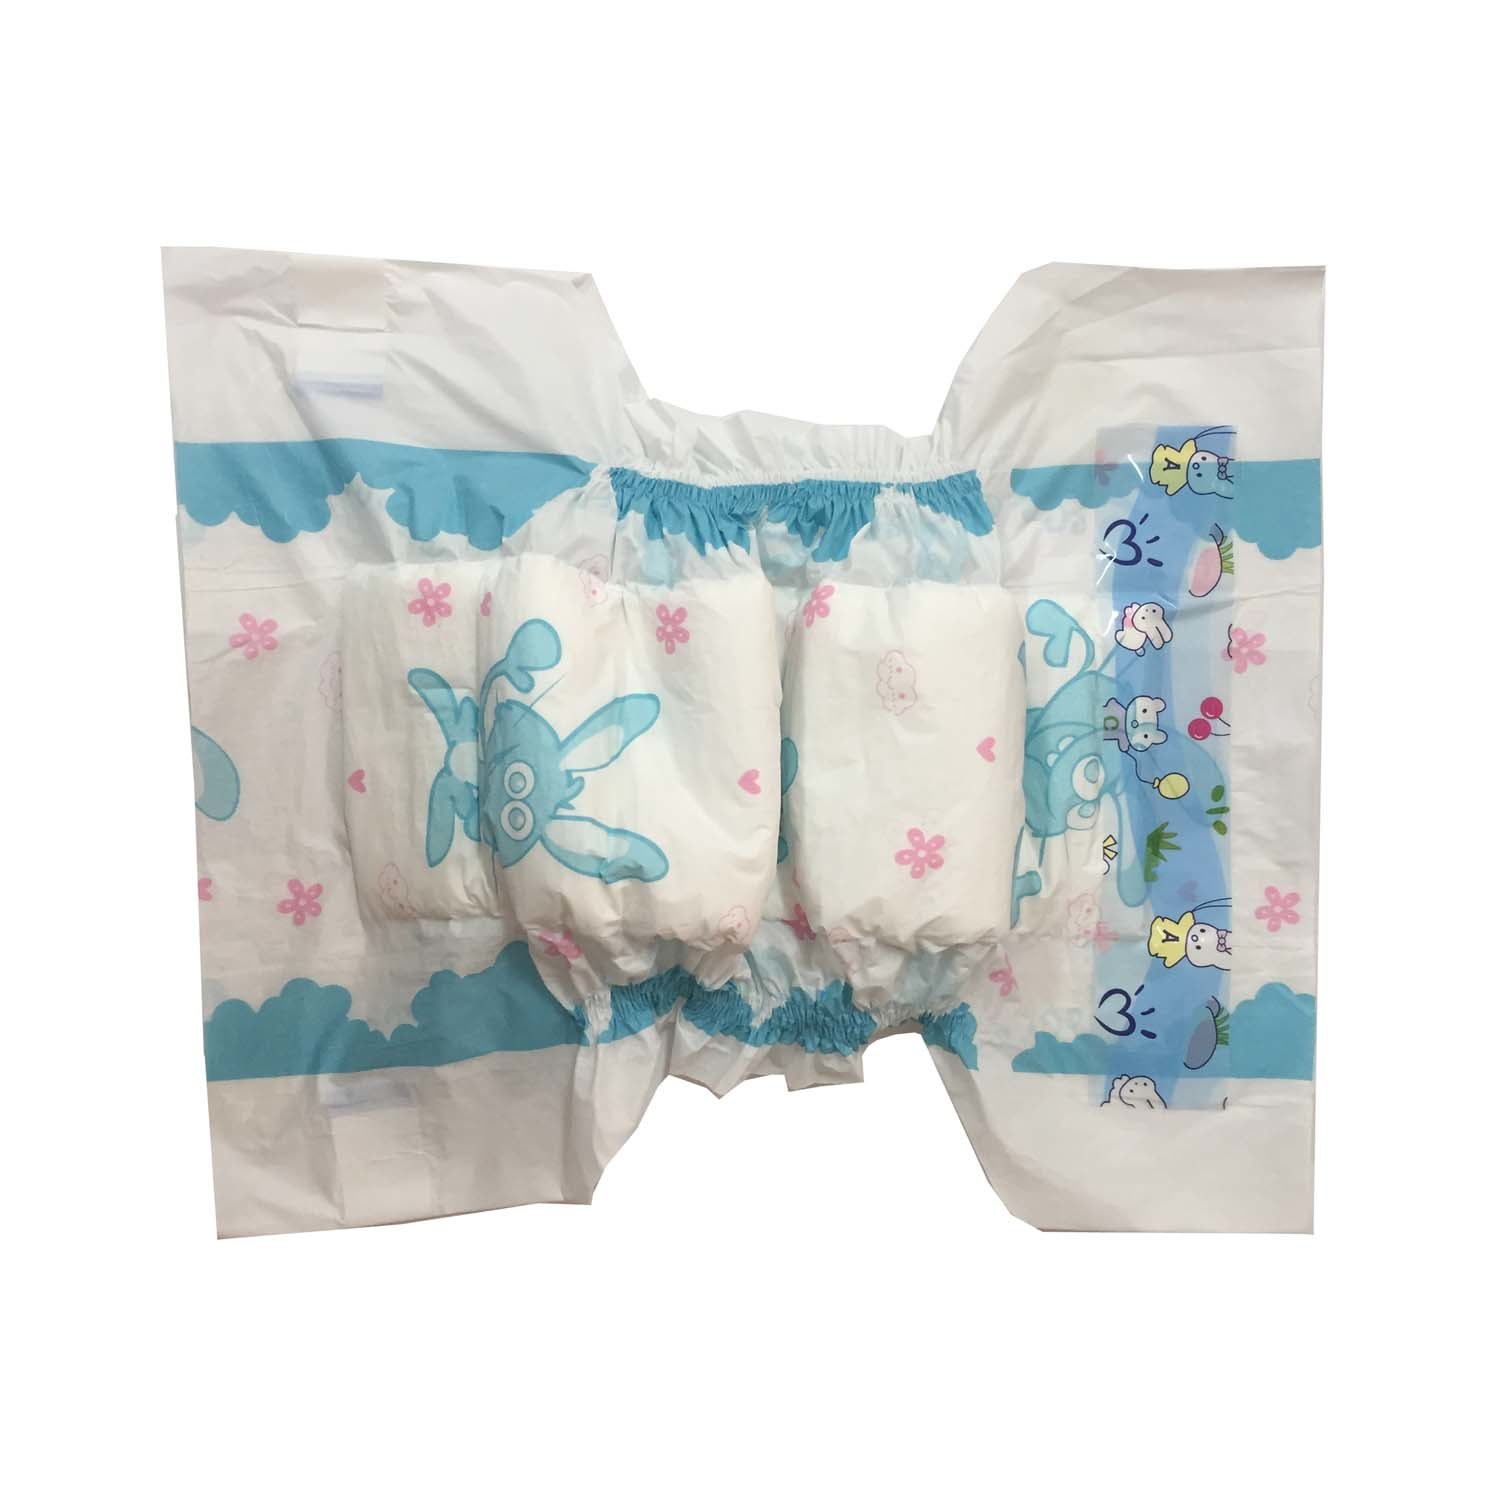 Rabit Picture Sanitary Products Baby Nappy&Diapers Good Quality